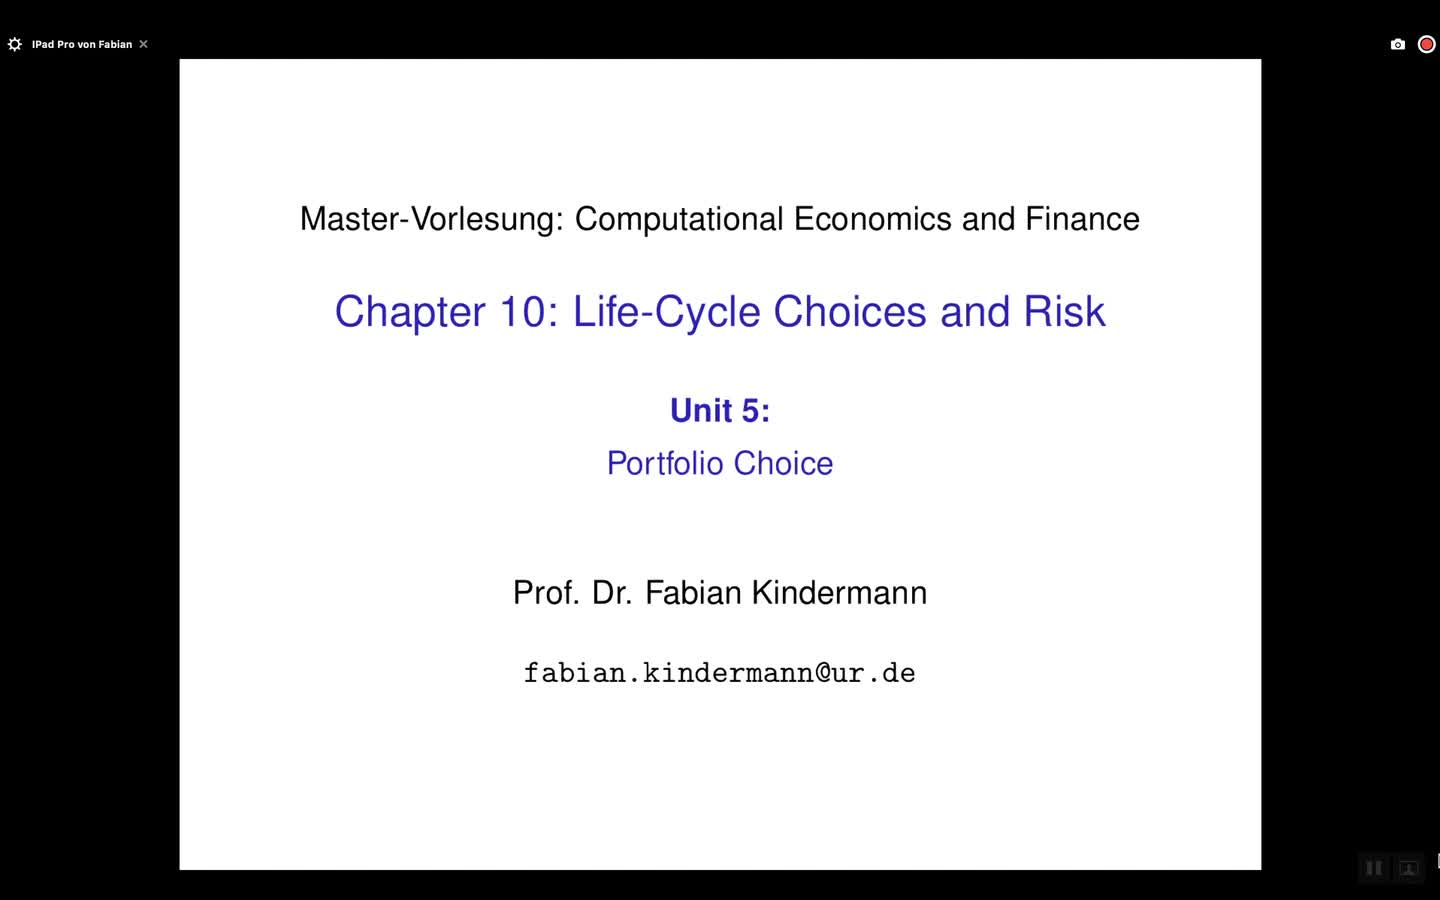 Chapter 10 - Unit 5 - Portfolio Choice